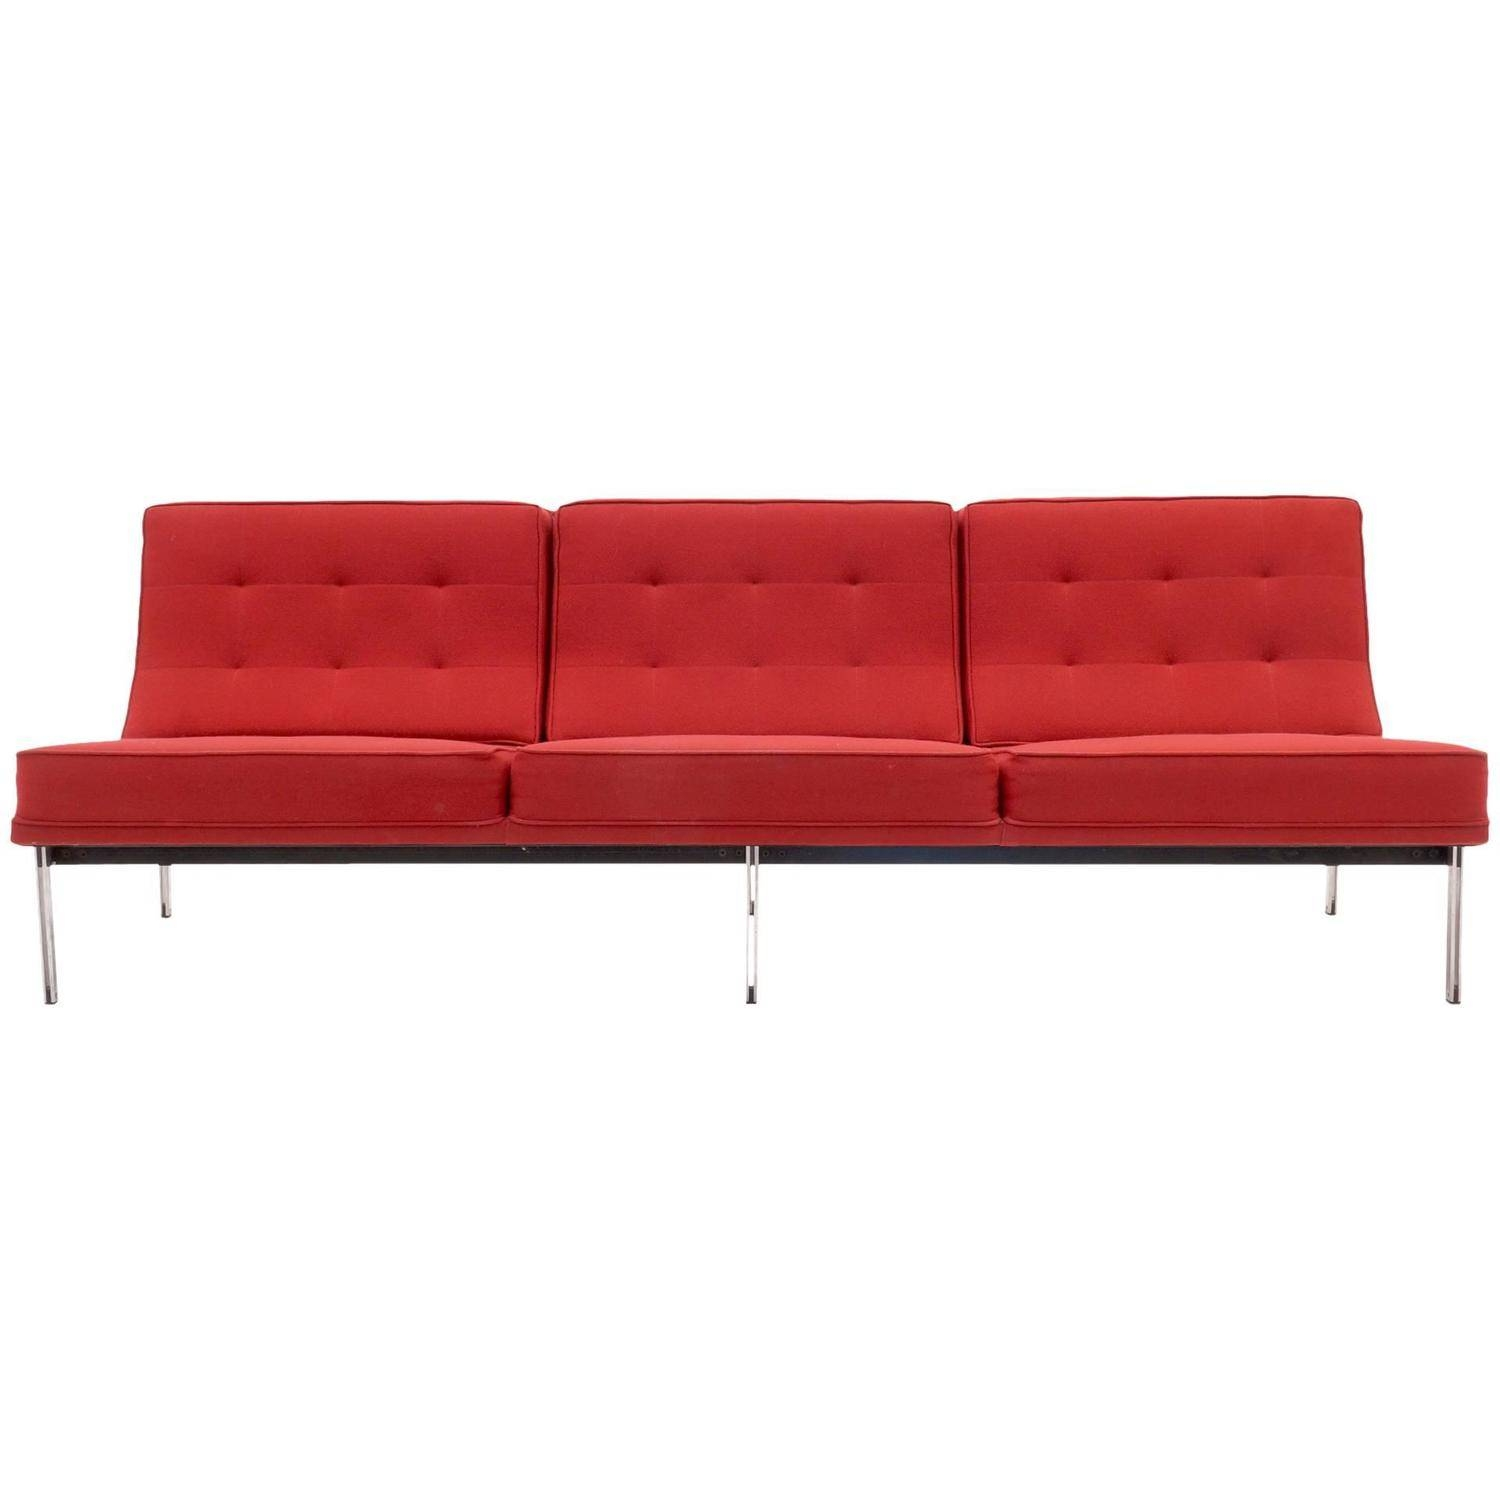 Florence Knoll Parallel Bar Three-Seat Armless Sofa Red Wool in Florence Grand Sofas (Image 9 of 25)